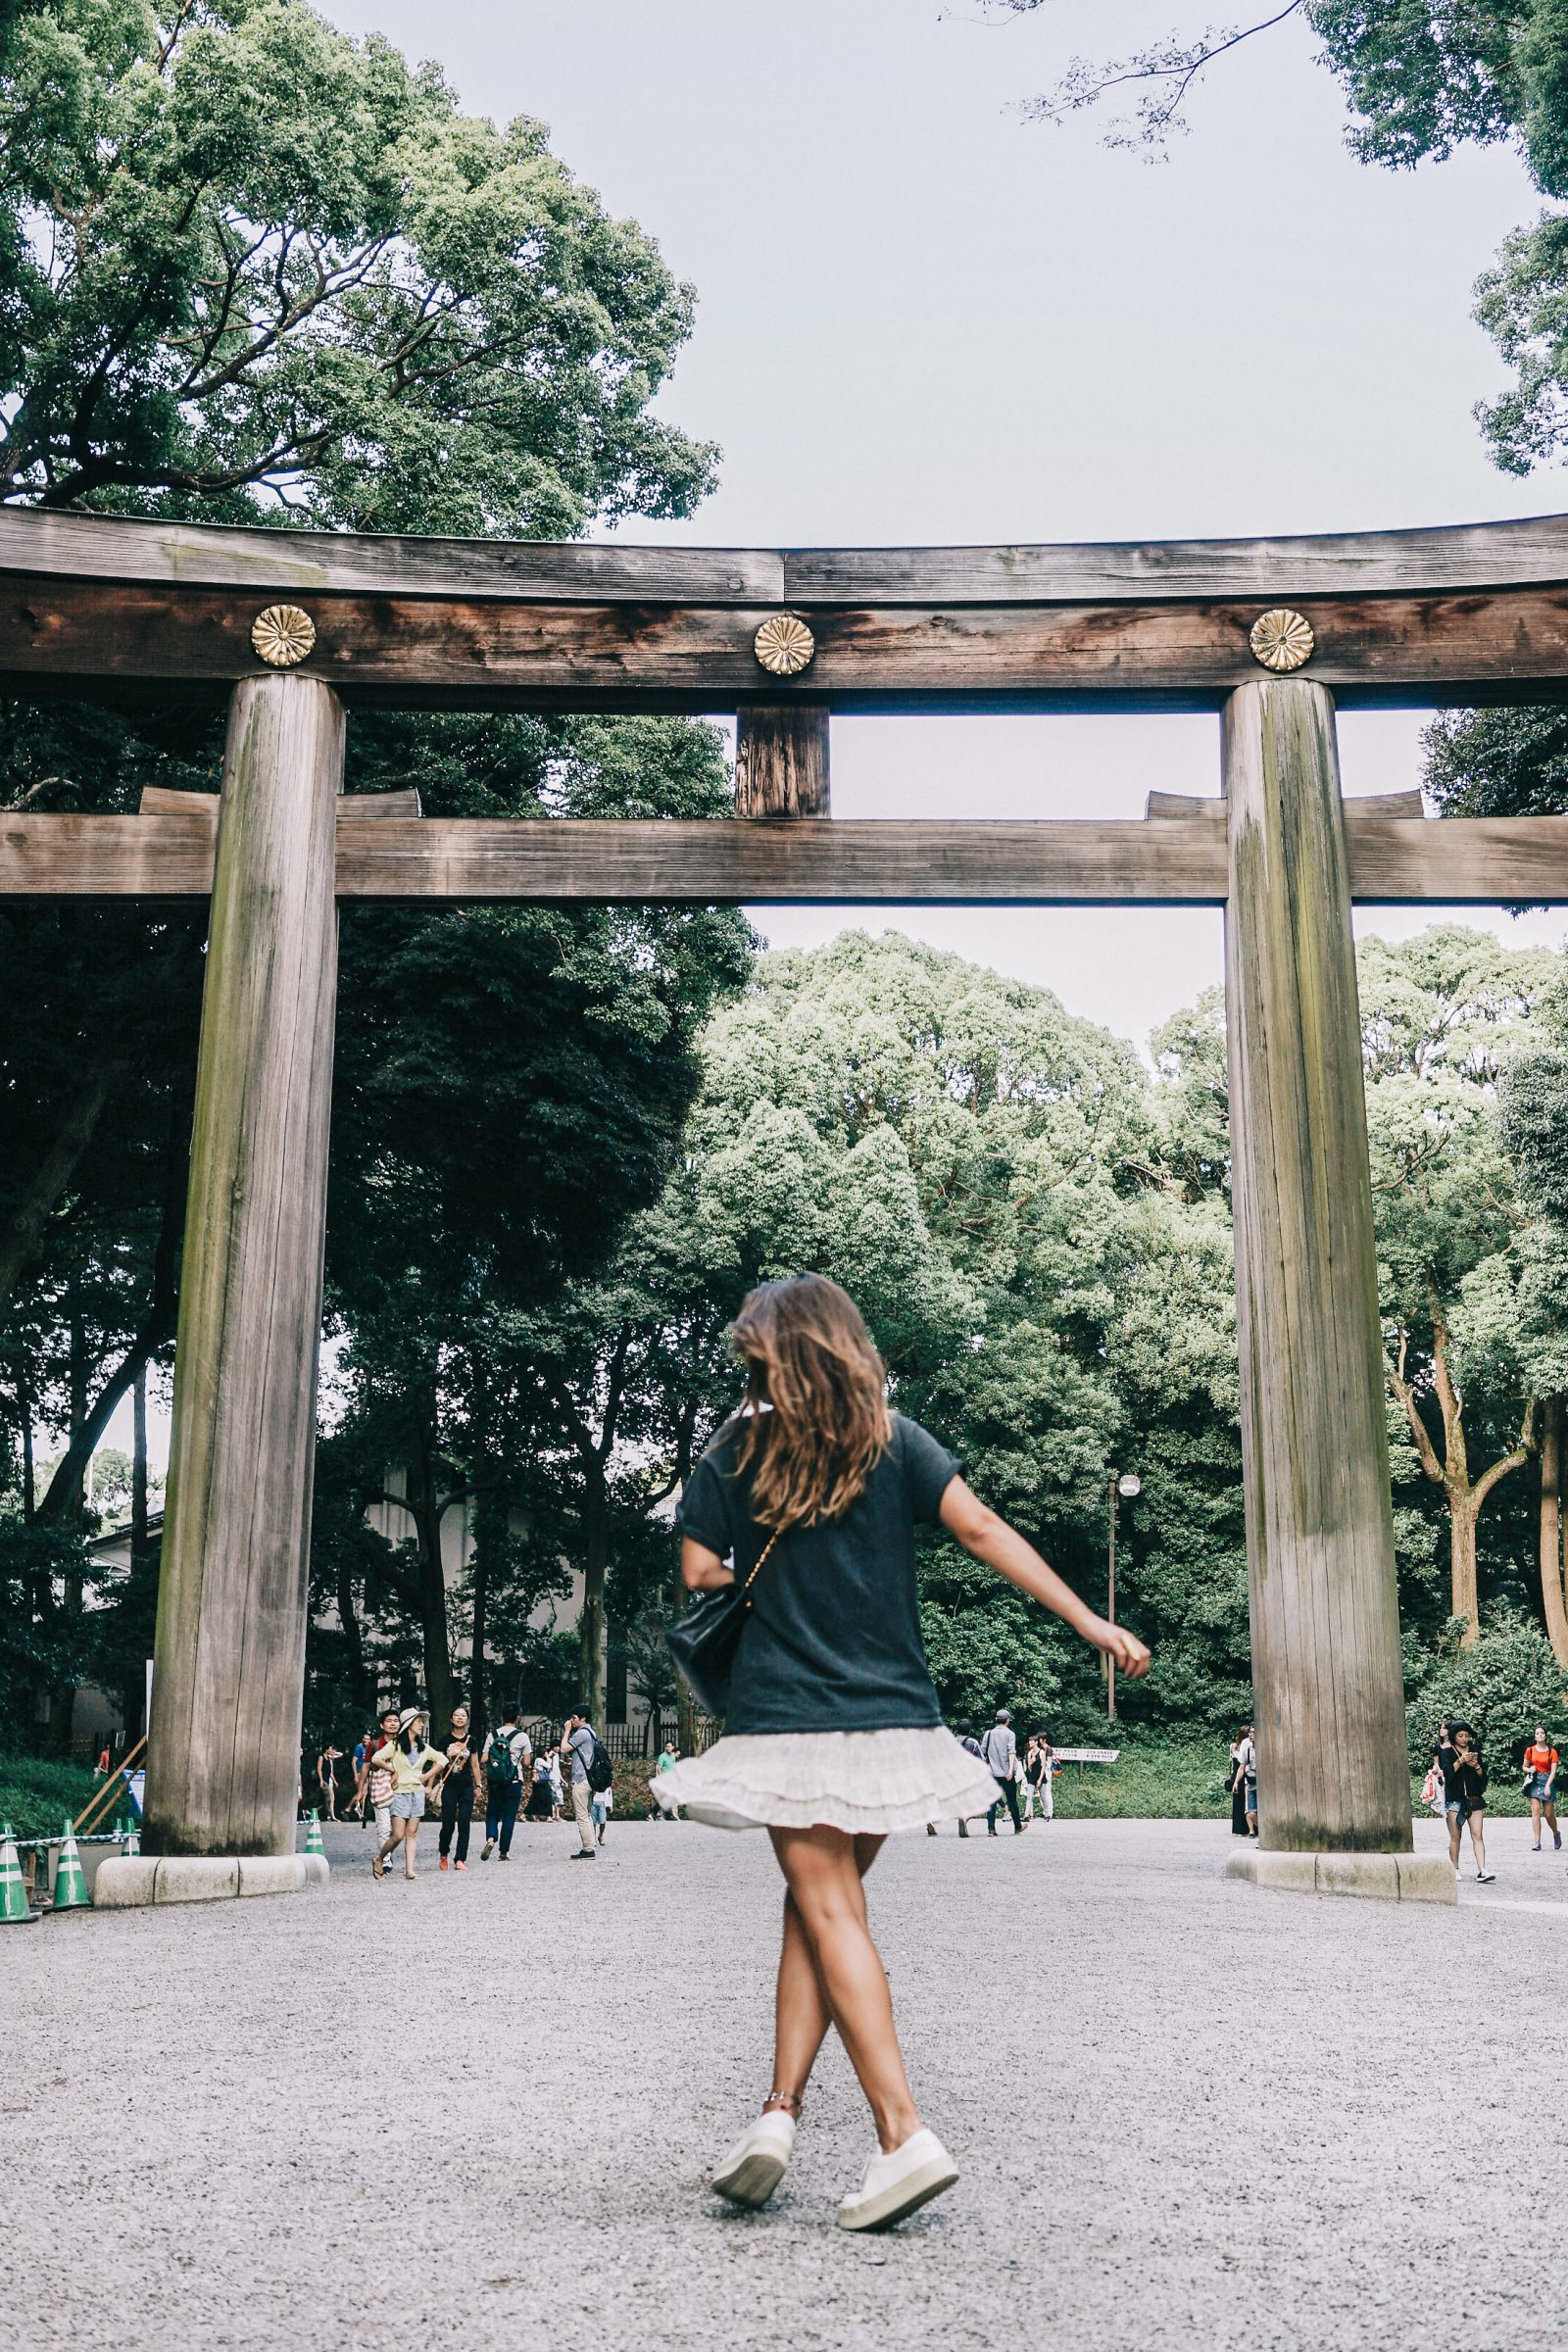 Tokyo_Travel_Guide-Outfit-Collage_Vintage-Street_Style-Top_Mettalica-Brandy_Melville-White_Skirt-Chanel_Vintage-Sneakers-70